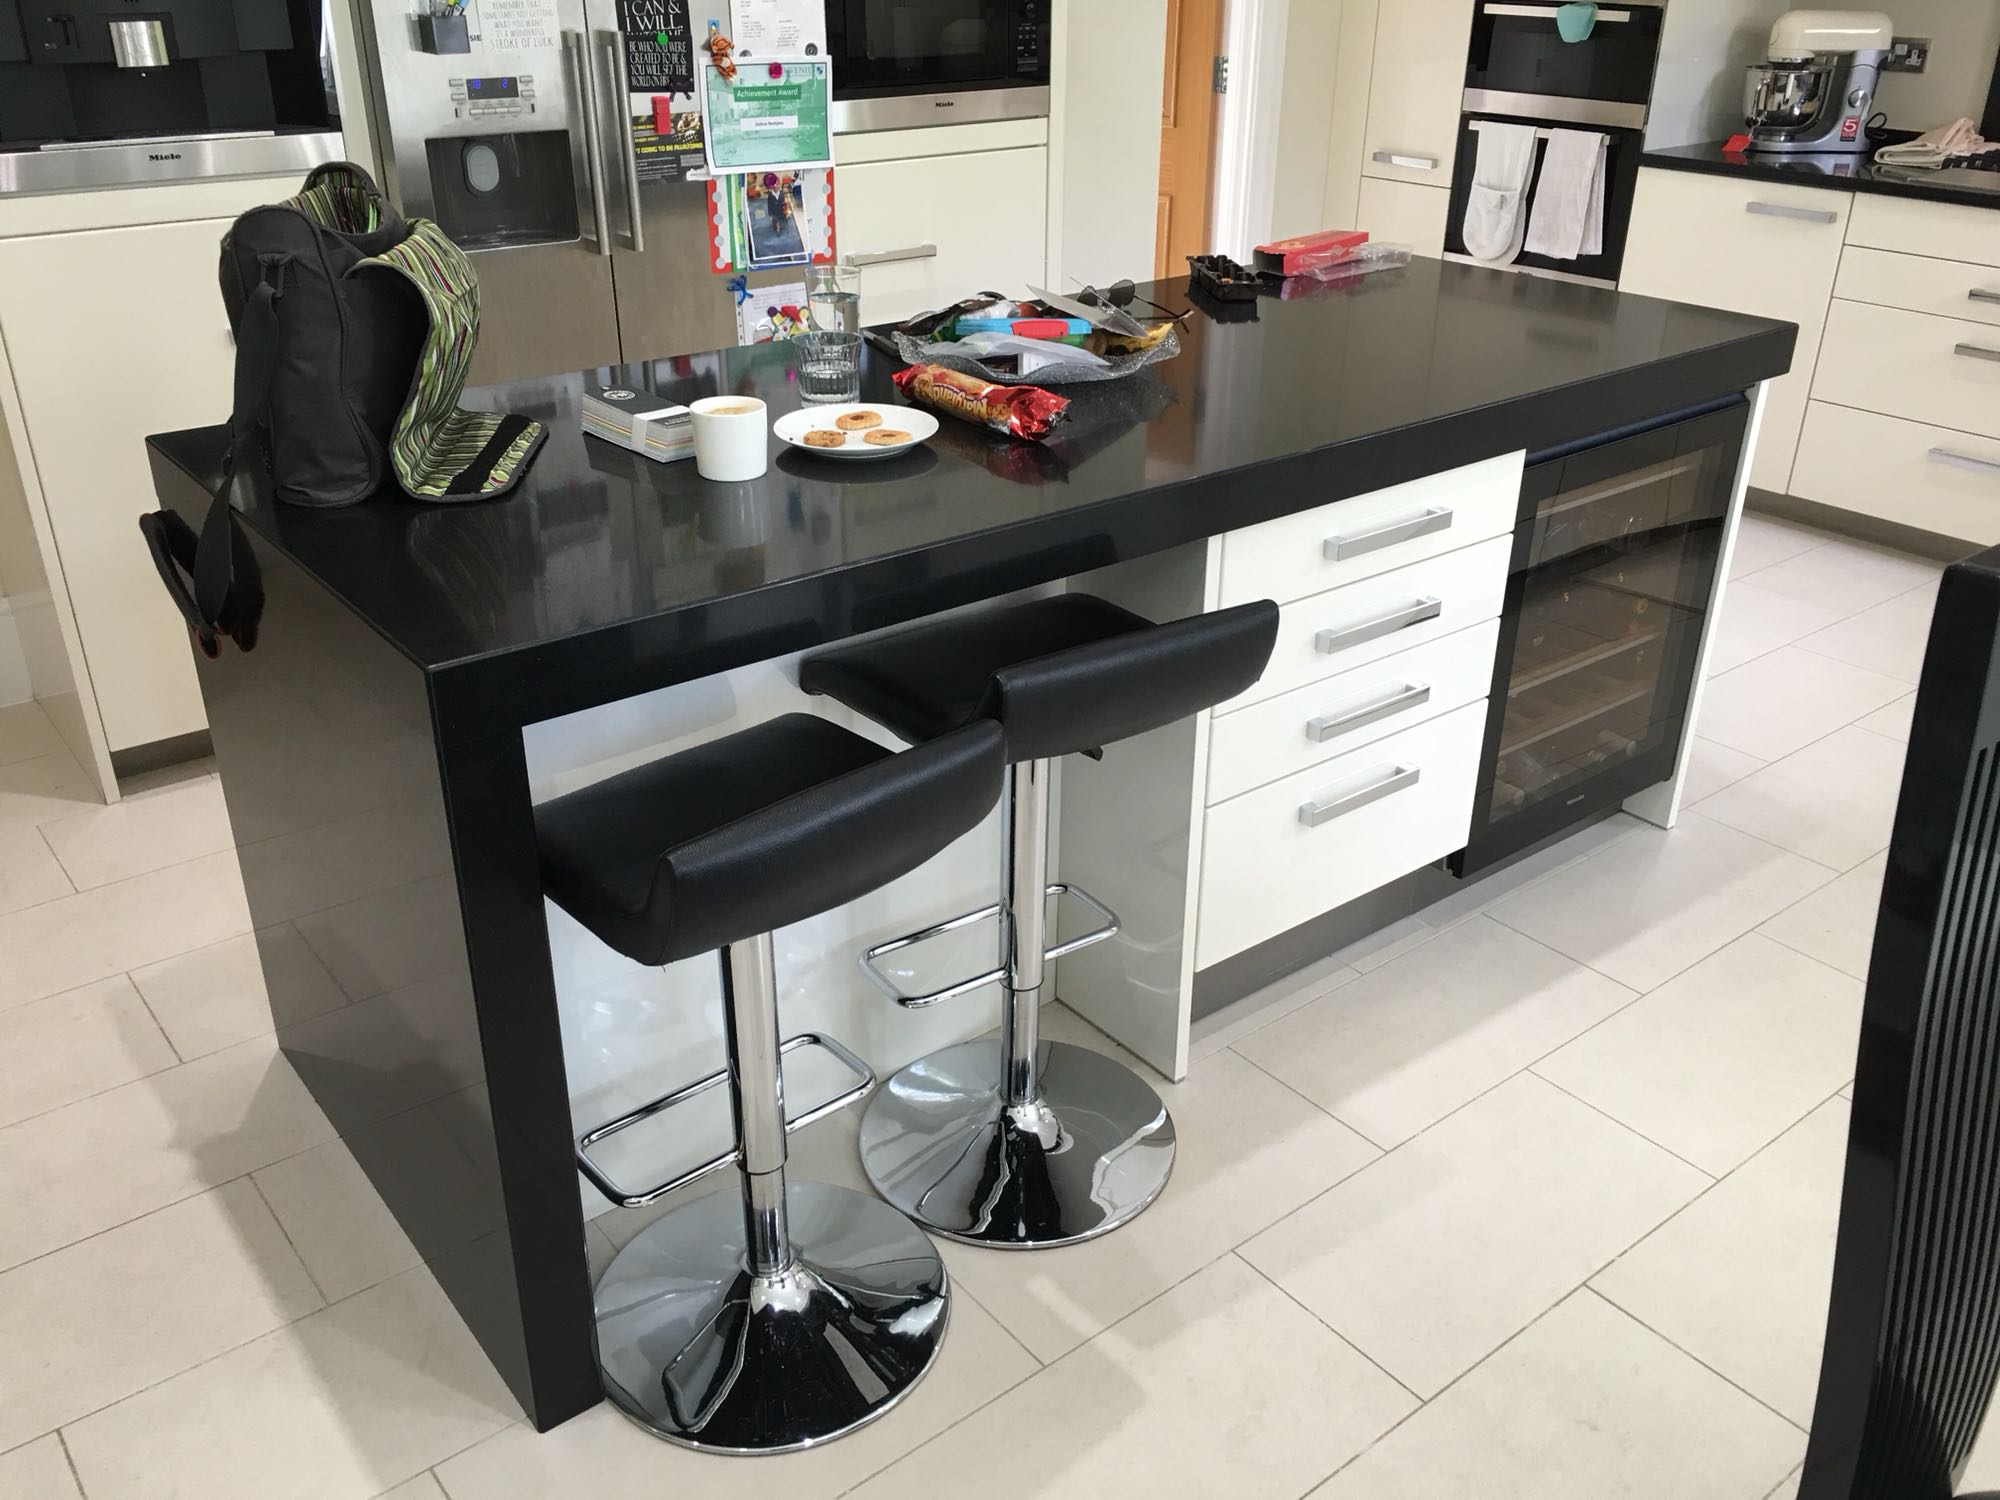 Furniture Village Aylesbury furniture bucks - second hand household furniture, buy and sell in